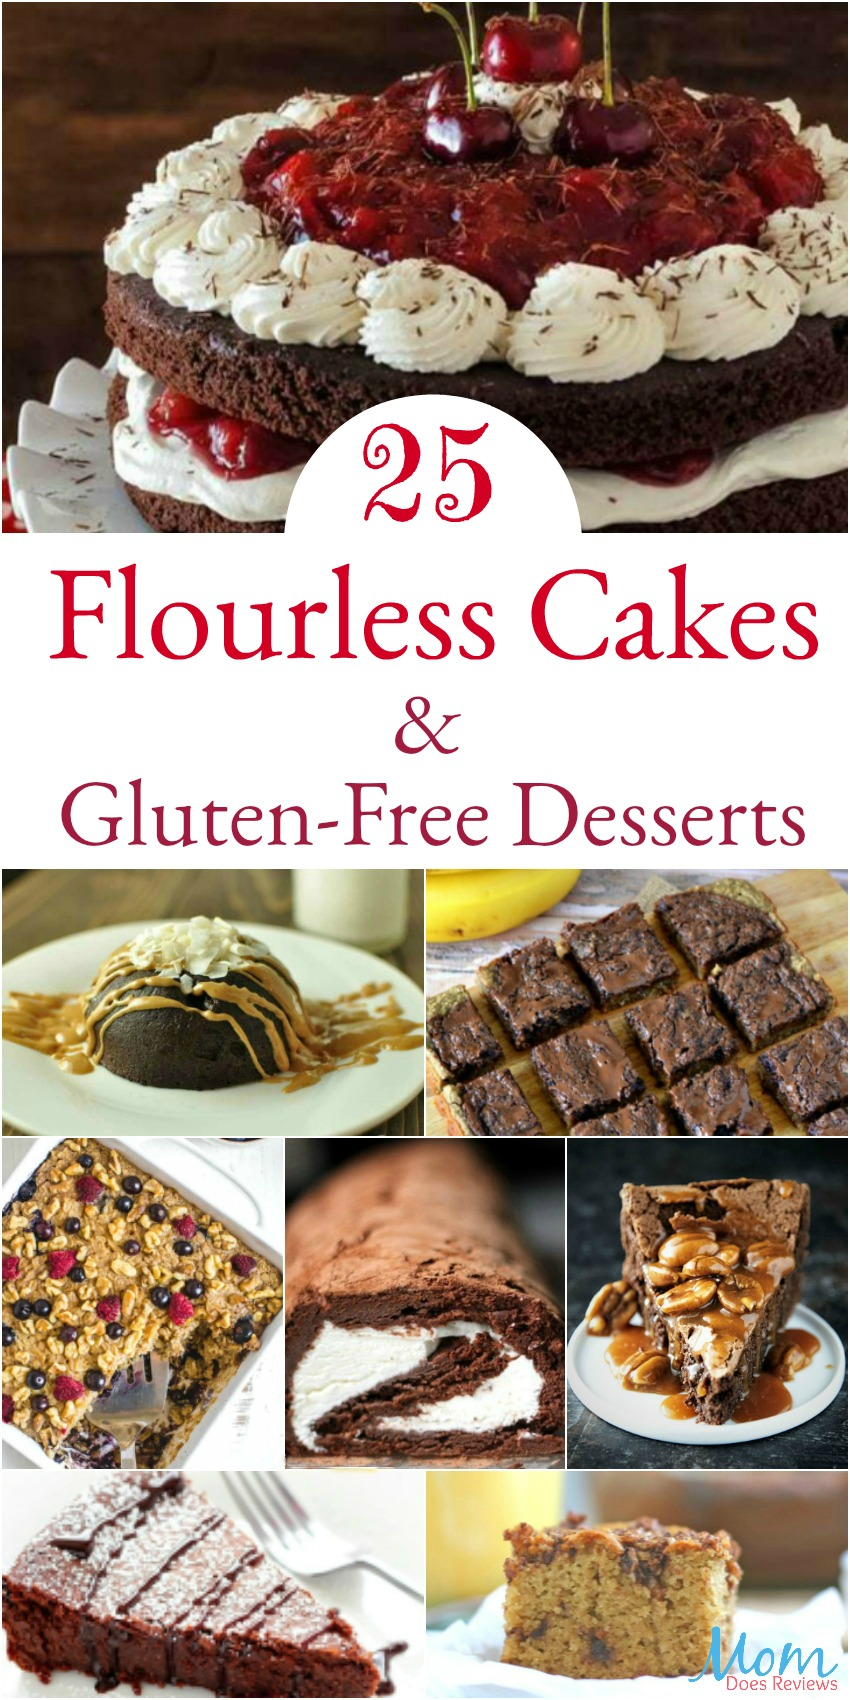 25 Flourless Cakes & Gluten-Free Desserts that will Make Your Mouth Water #desserts #recipes #glutenfree